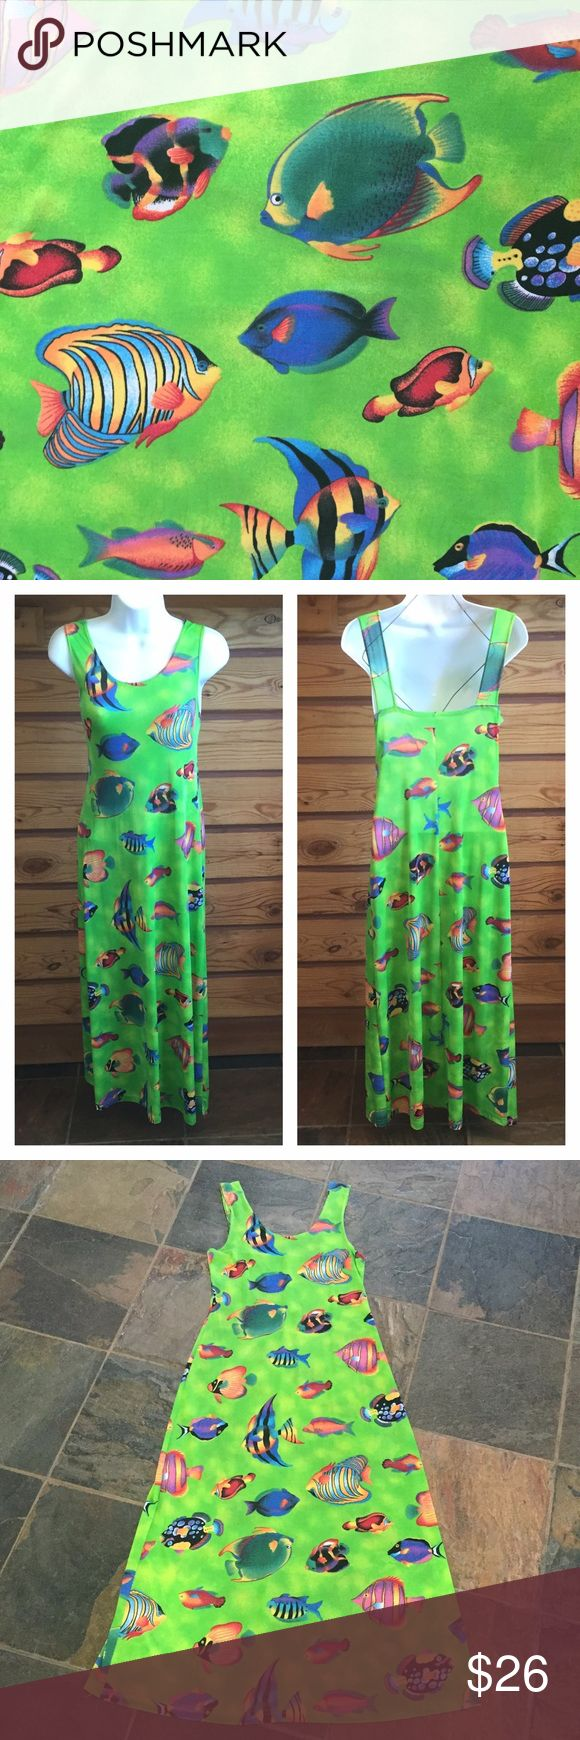 """Summer Tropical Fish Lime Green Slinky Maxi Dress Gorgeous, slinky, sexy, & fun!! Sleeveless maxi dress in electric lime green with an all-over print of tropical fish. Slinky & clingy fabric shows off your curves. Made by Coco's Family. 90% Polyester & 10% Lycra. Size Medium. Dress is 49"""" long. Cocos Family Dresses Maxi"""